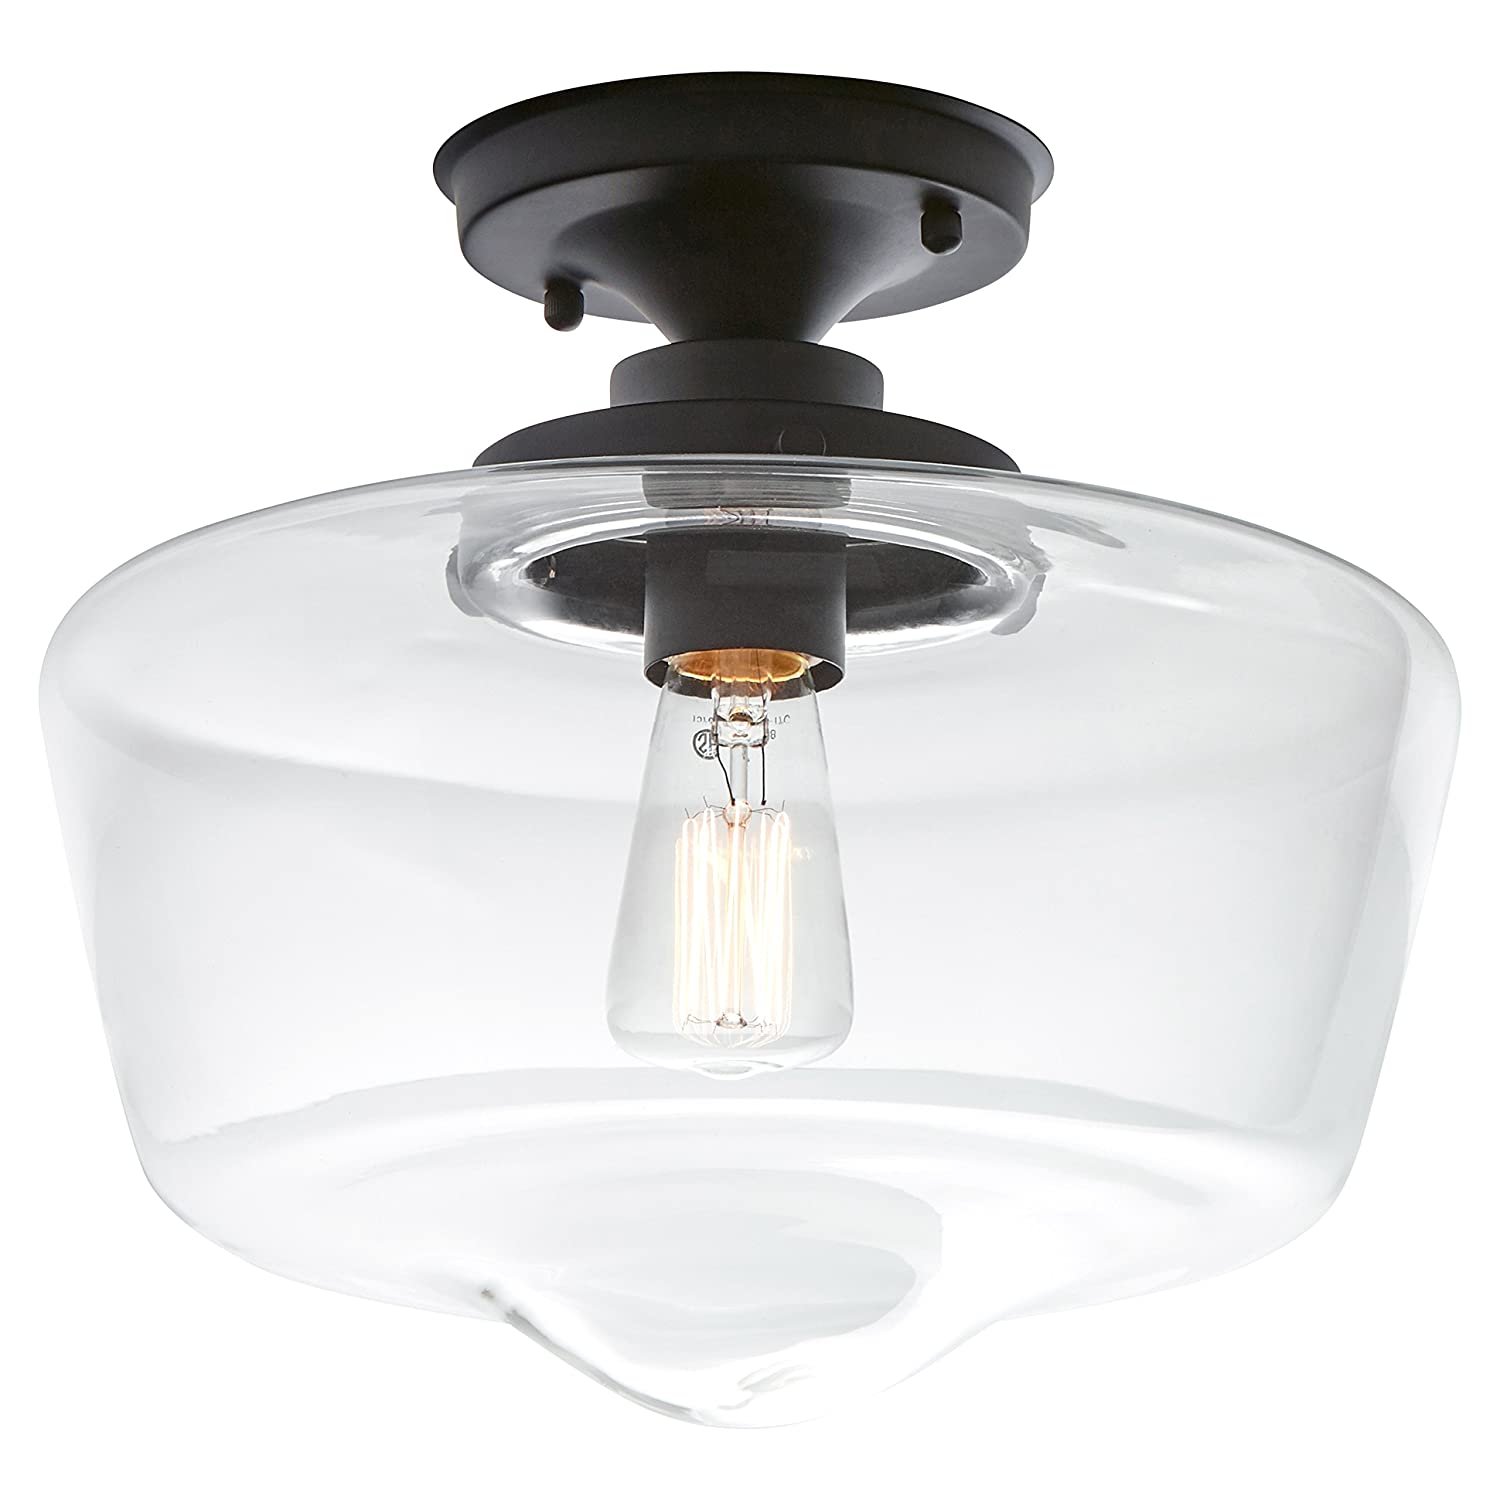 Brushed Nickel with Glass Shade 10.5H Canarm IFM725A11BN 10.5H With Bulb Stone /& Beam Schoolhouse Semi-Flush Mount Ceiling Light